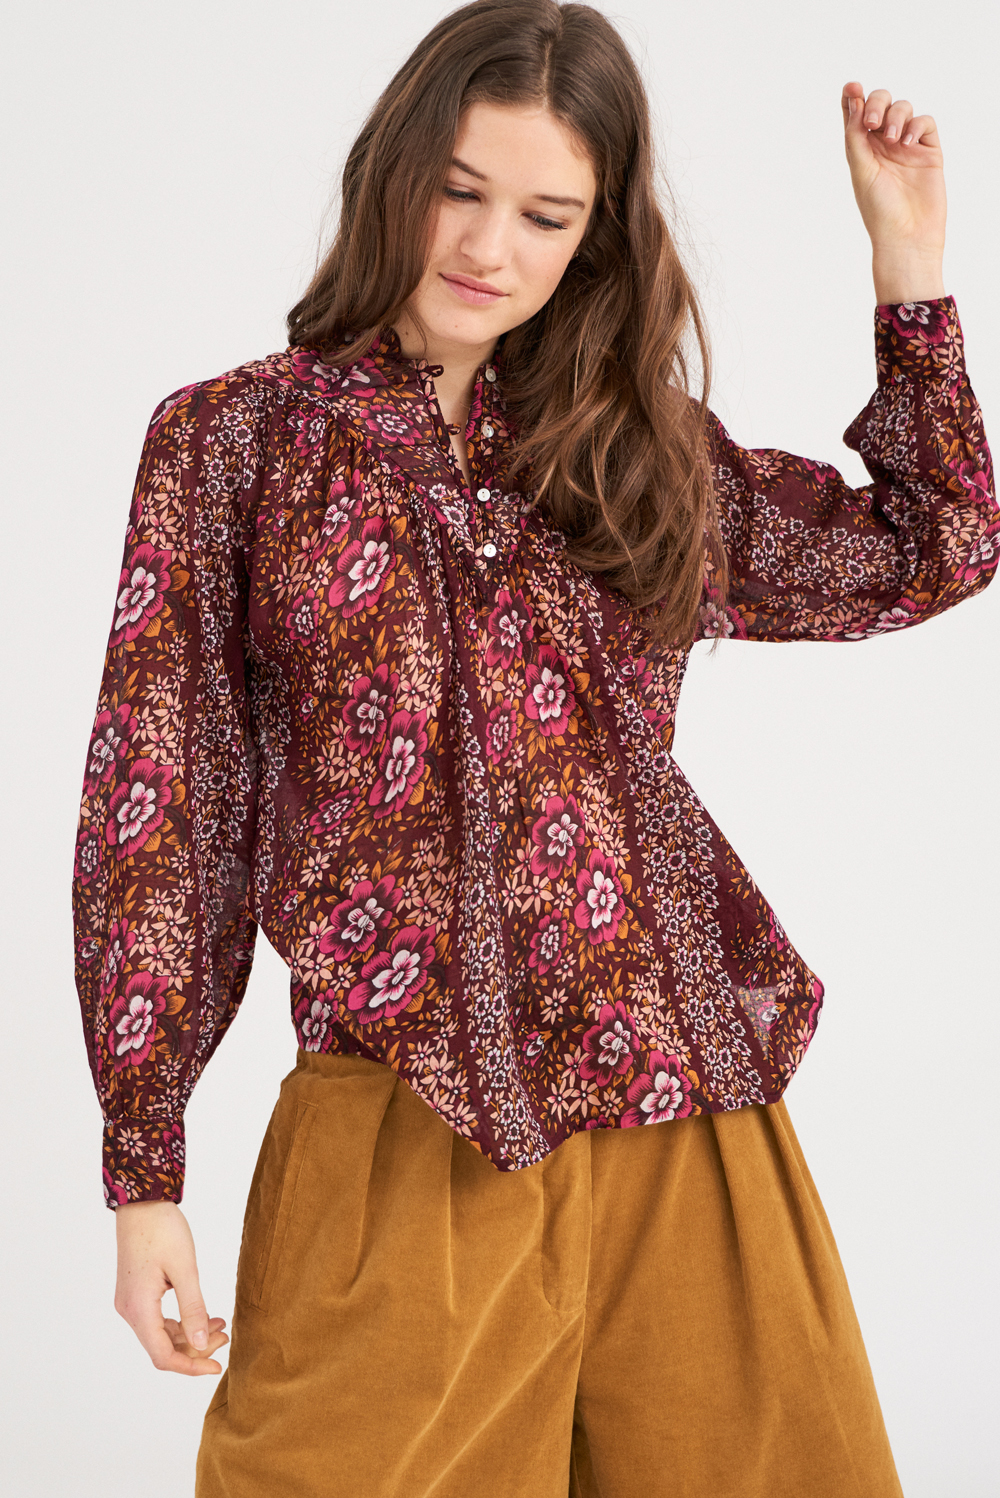 Blouse à fleurs Lady - Antik Batik (photo)